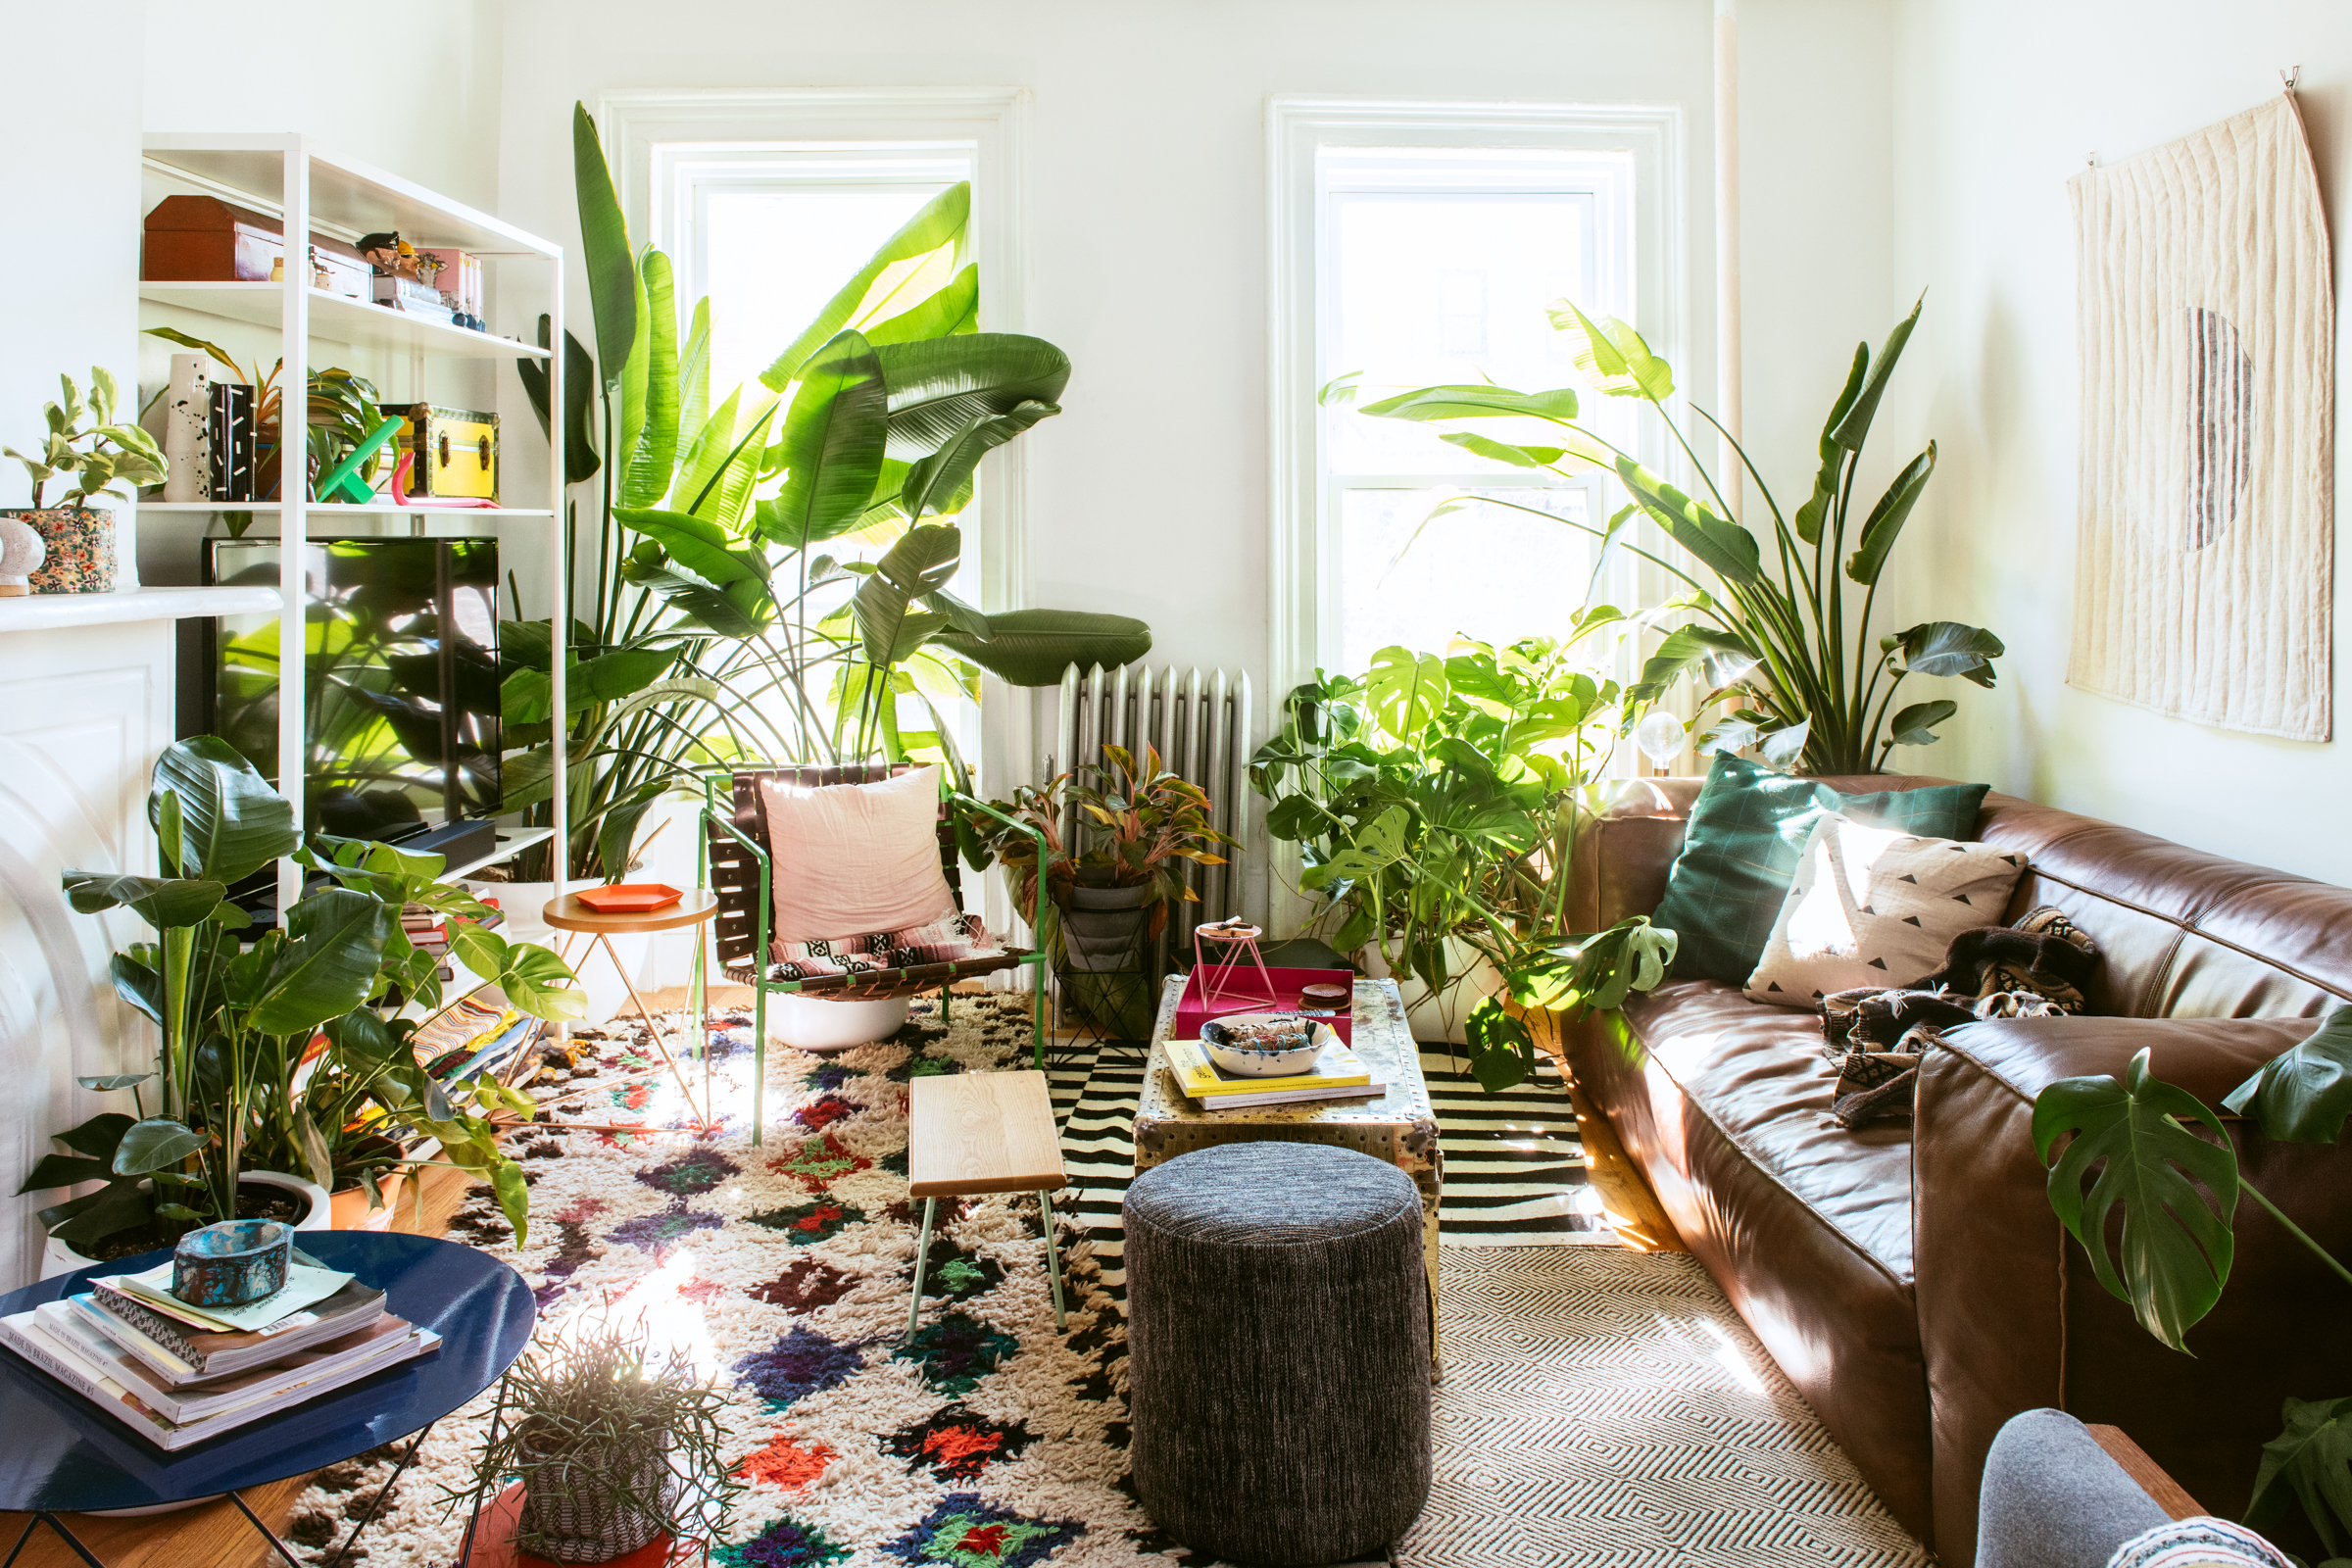 9 must-follow Instagram accounts for plant lovers